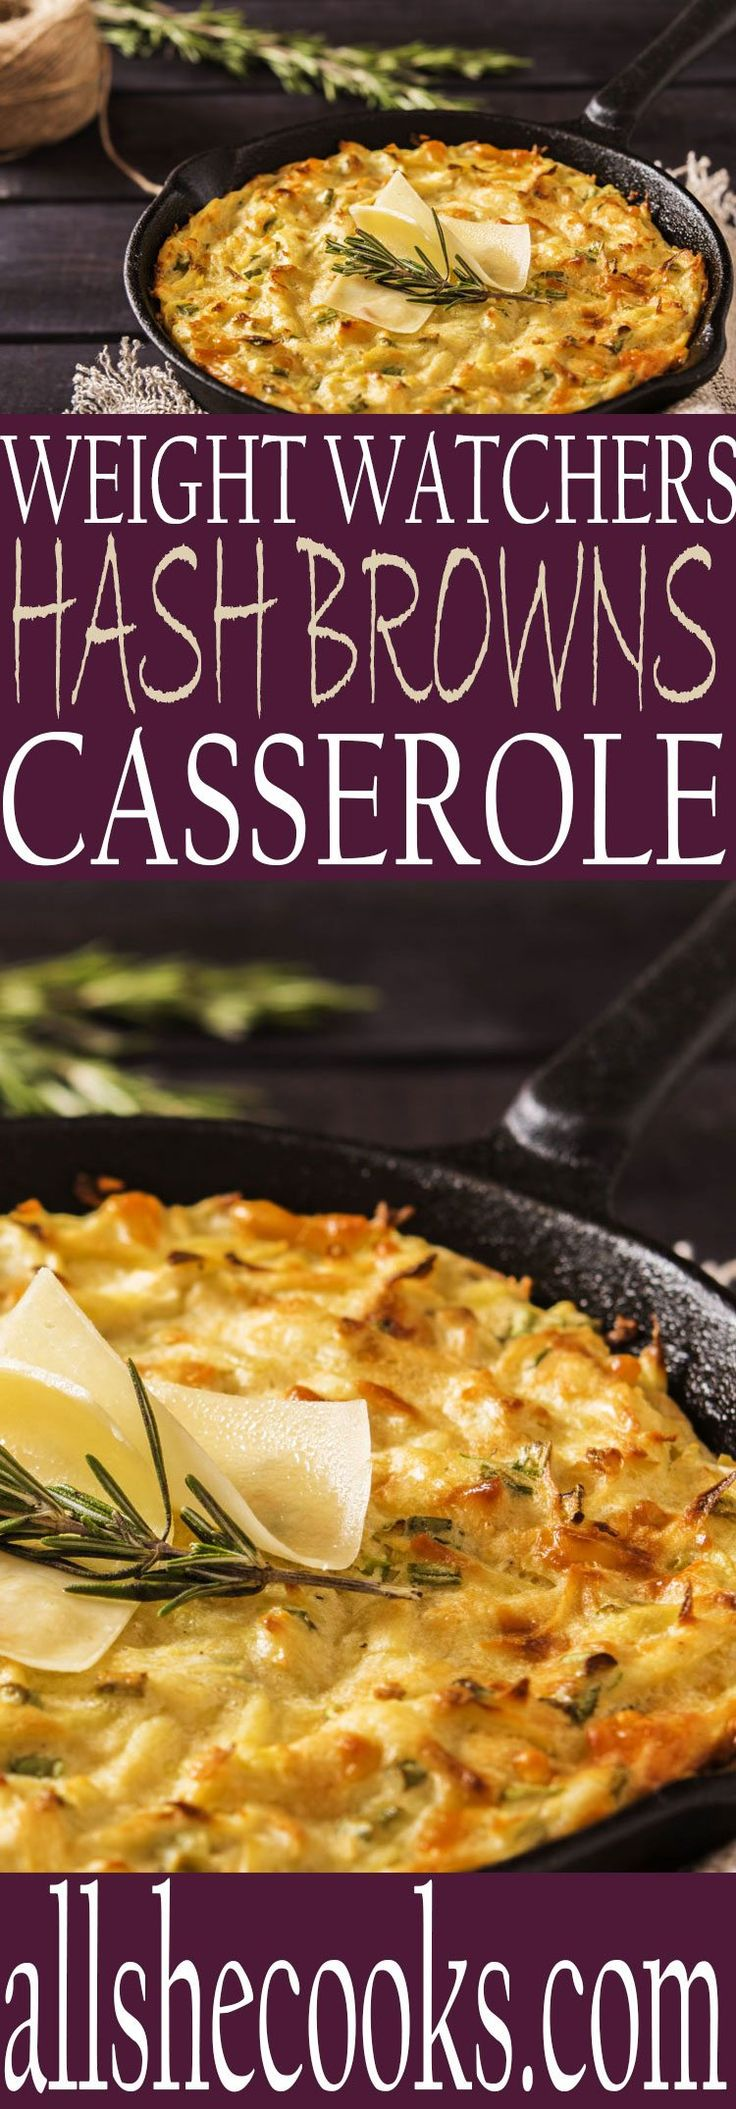 Enjoy this Weight Watchers Hash Browns Casserole that will let you count points and enjoy your meal. Great choice for breakfast or dinner.